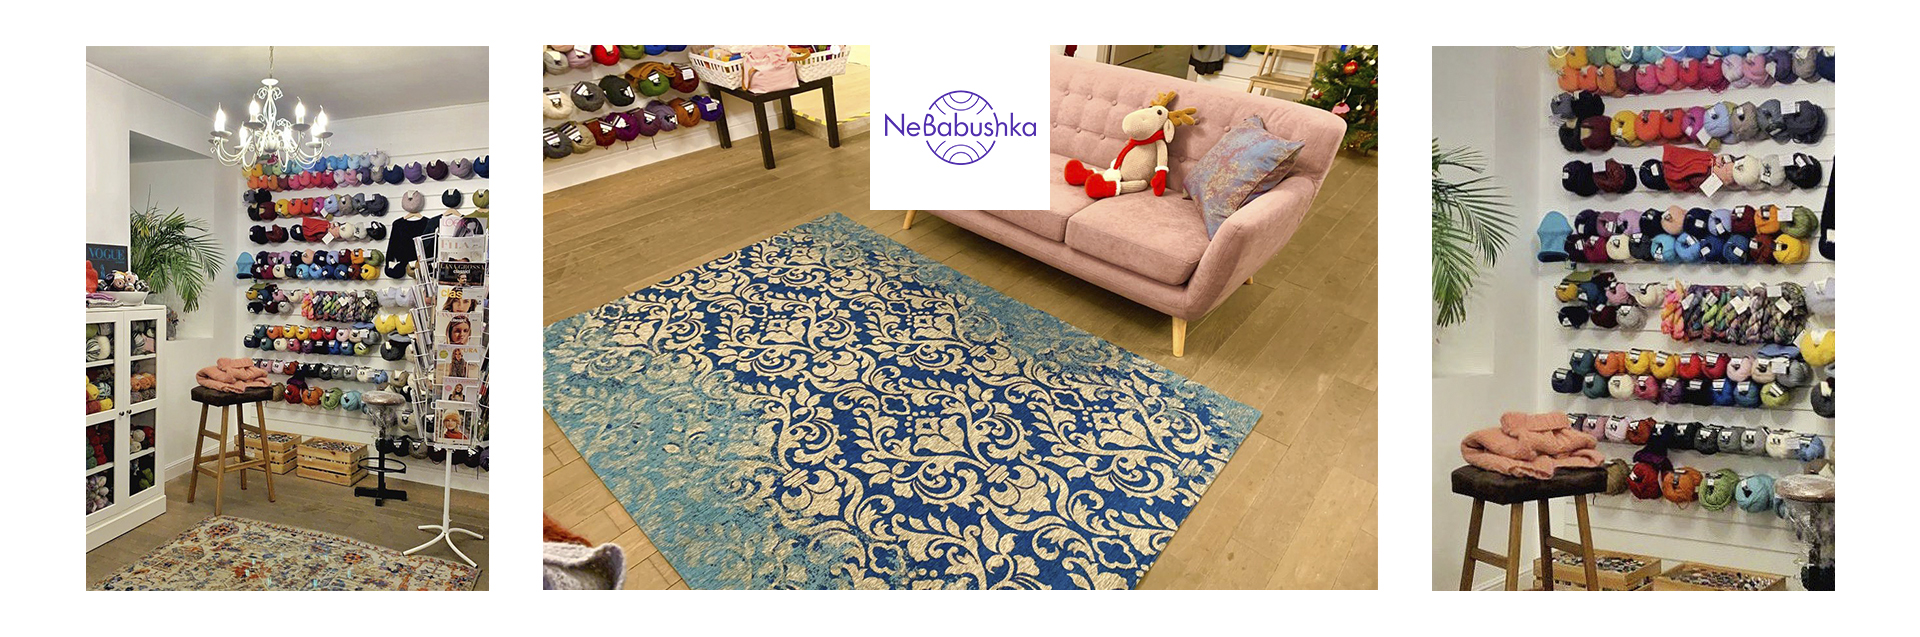 "The store ""NeBabushka"" is the place where you can buy the highest quality yarn, knitting needles, crochet hooks, useful accessories for knitting and crocheting, books and magazines. To satisfy your needs, we are constantly on the lookout for the best products in the world market. We will be glad to welcome you in to our shop in its atmosphere of hospitality!"